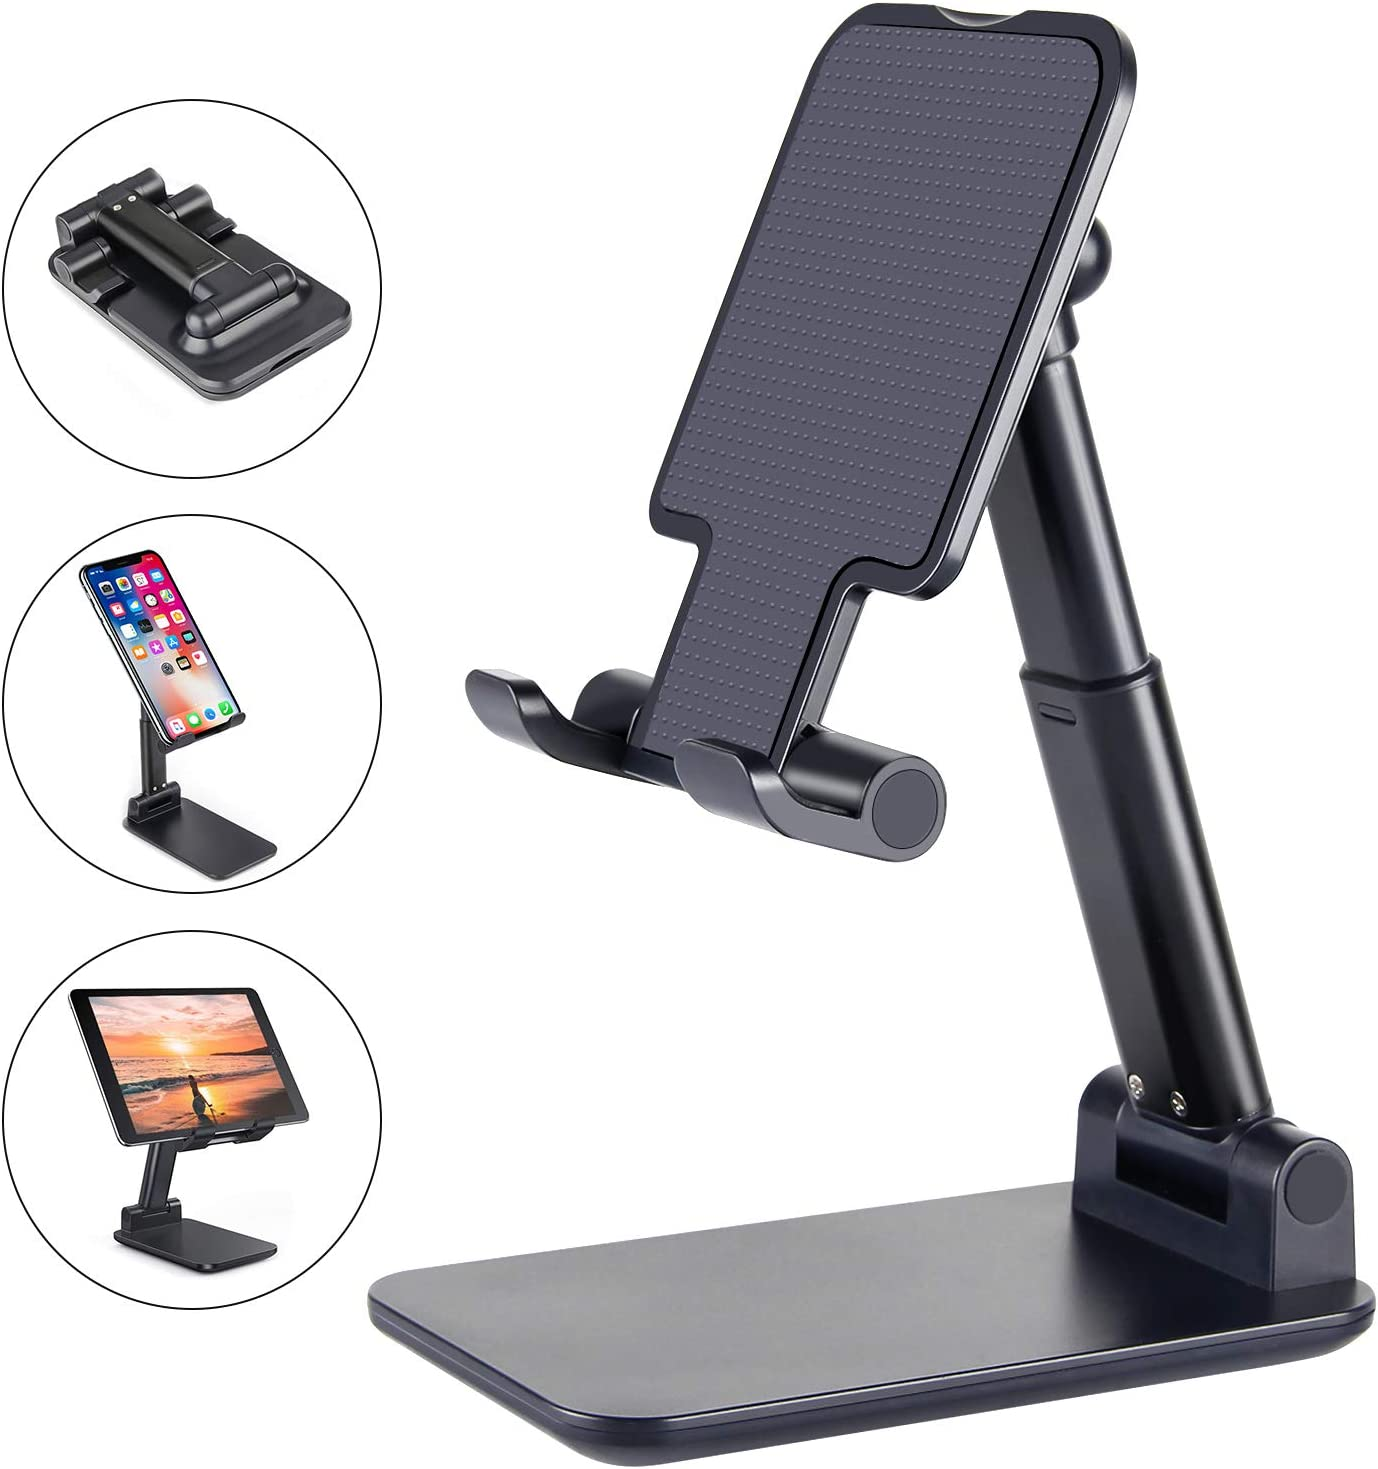 Cell Phone Stand, ANDATE Angle Height Adjustable Cell Phone Stand for Desk, Fully Foldable Cell Phone Holder, Tablet Stand, Case Friendly Compatible with All Mobile Phone/iPad/Kindle/Tablet (Black)